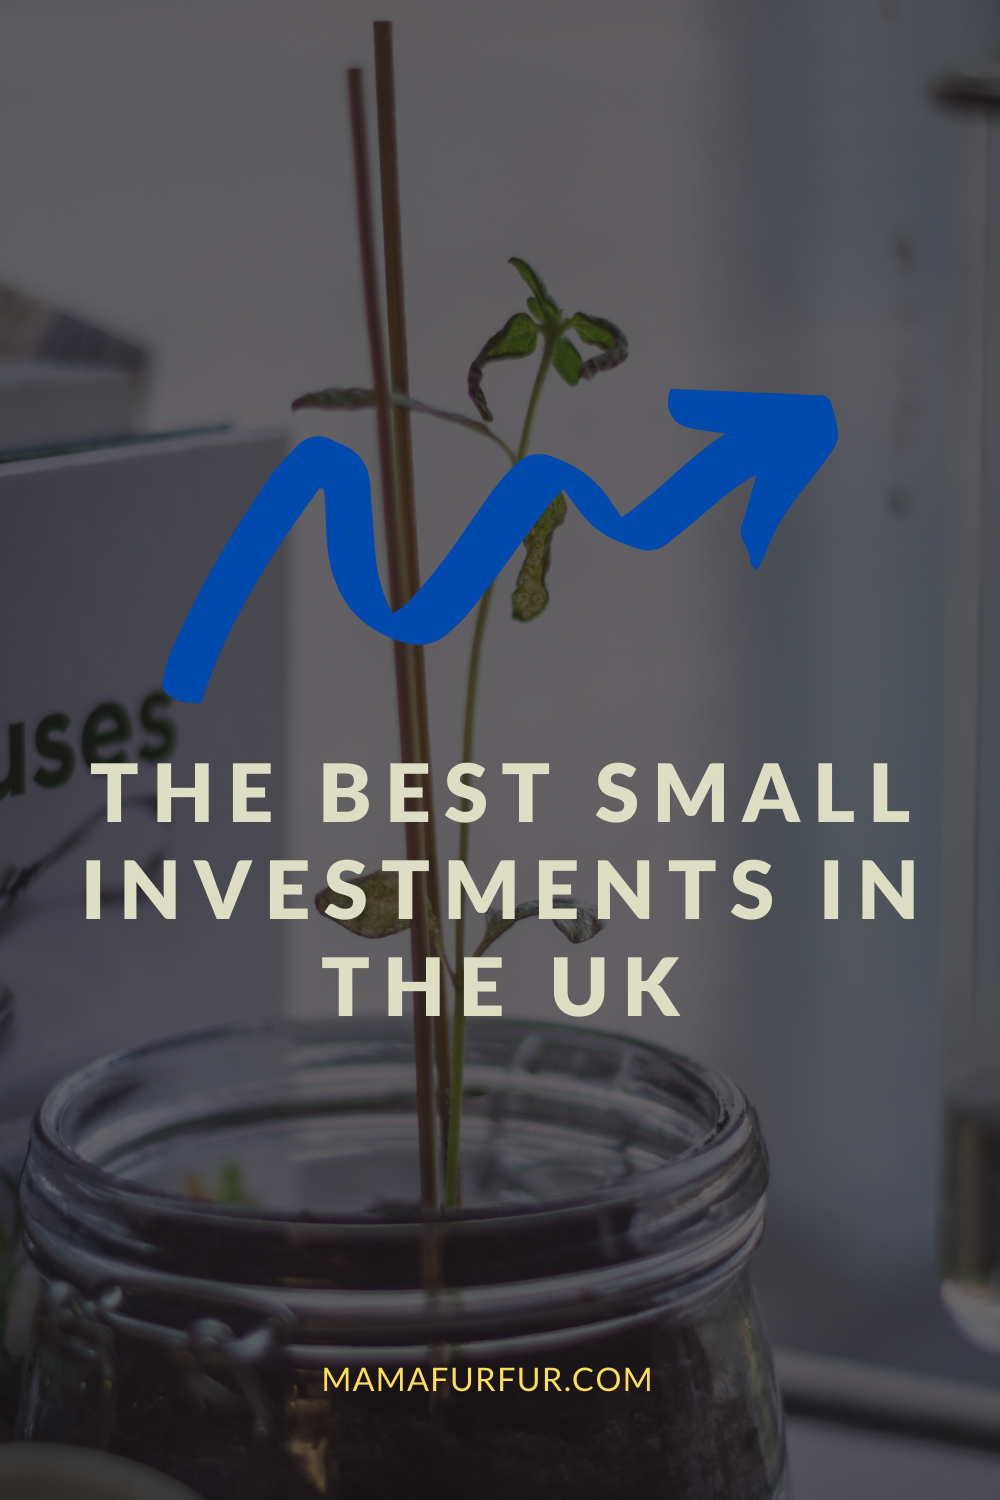 The Best Small Investments in the UK